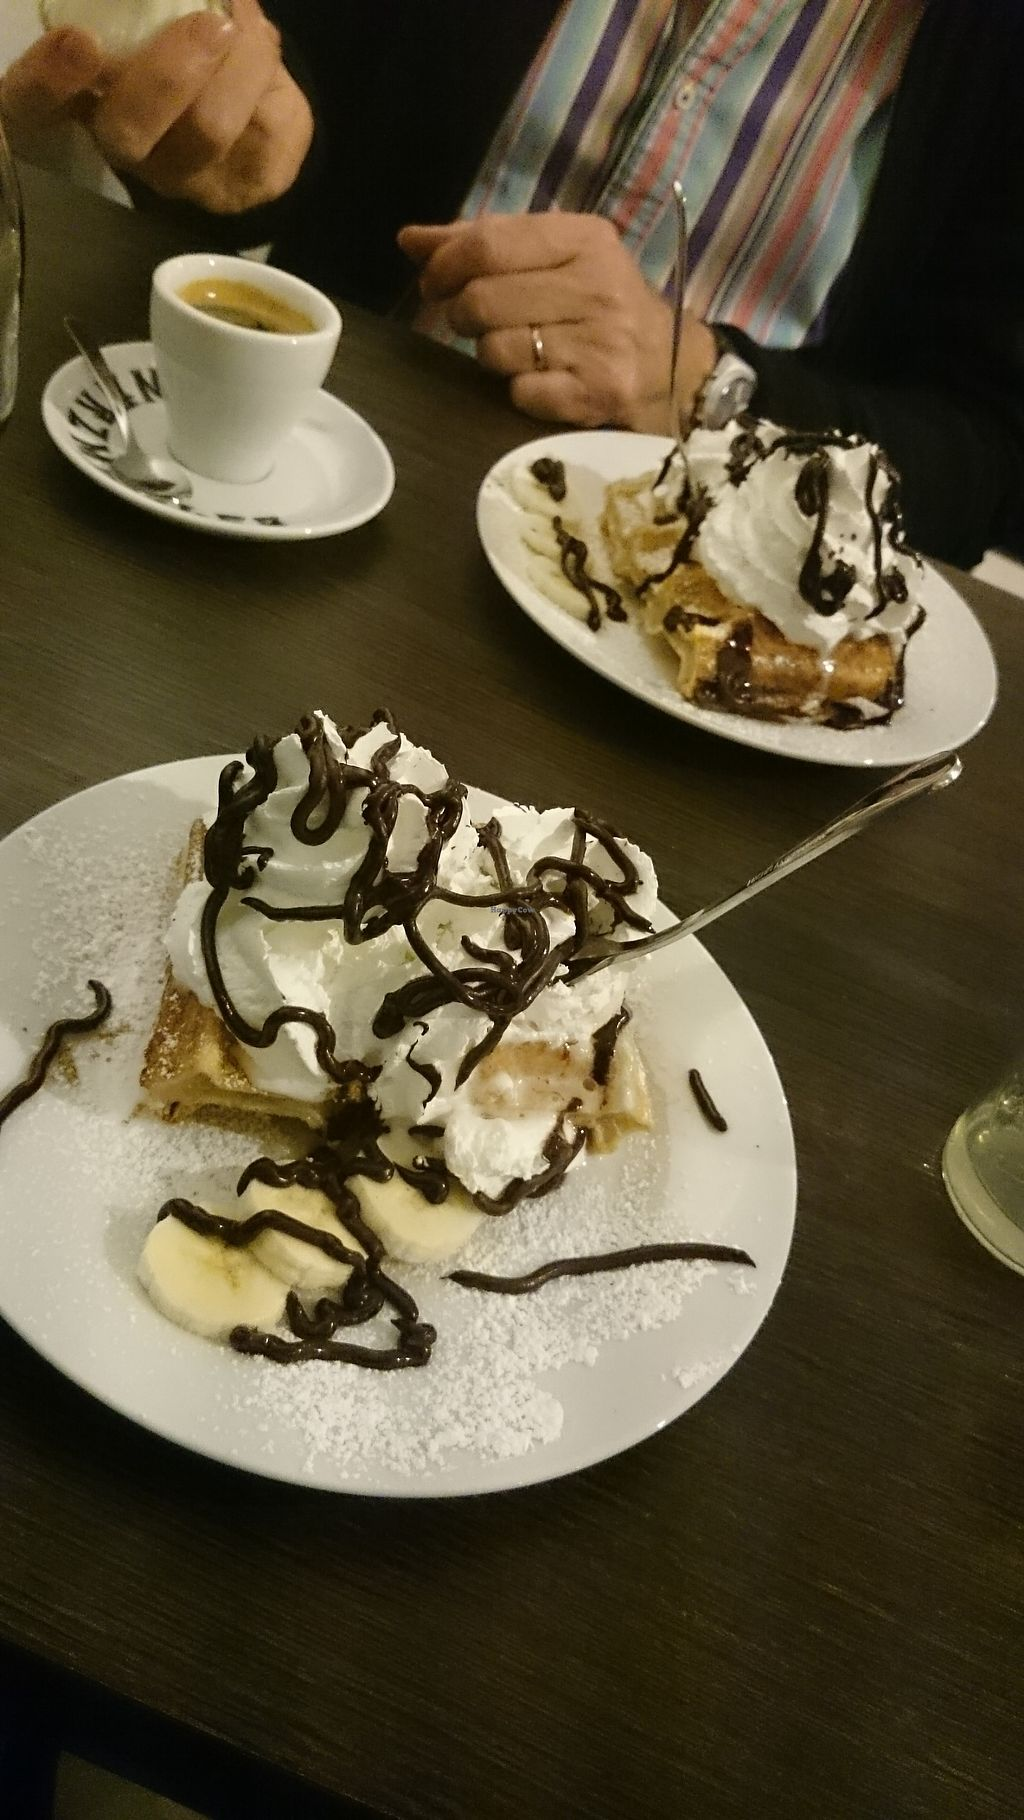 """Photo of Super Jami  by <a href=""""/members/profile/chb-pbfp"""">chb-pbfp</a> <br/>Dessert vegan waffle <br/> August 25, 2017  - <a href='/contact/abuse/image/55059/297107'>Report</a>"""